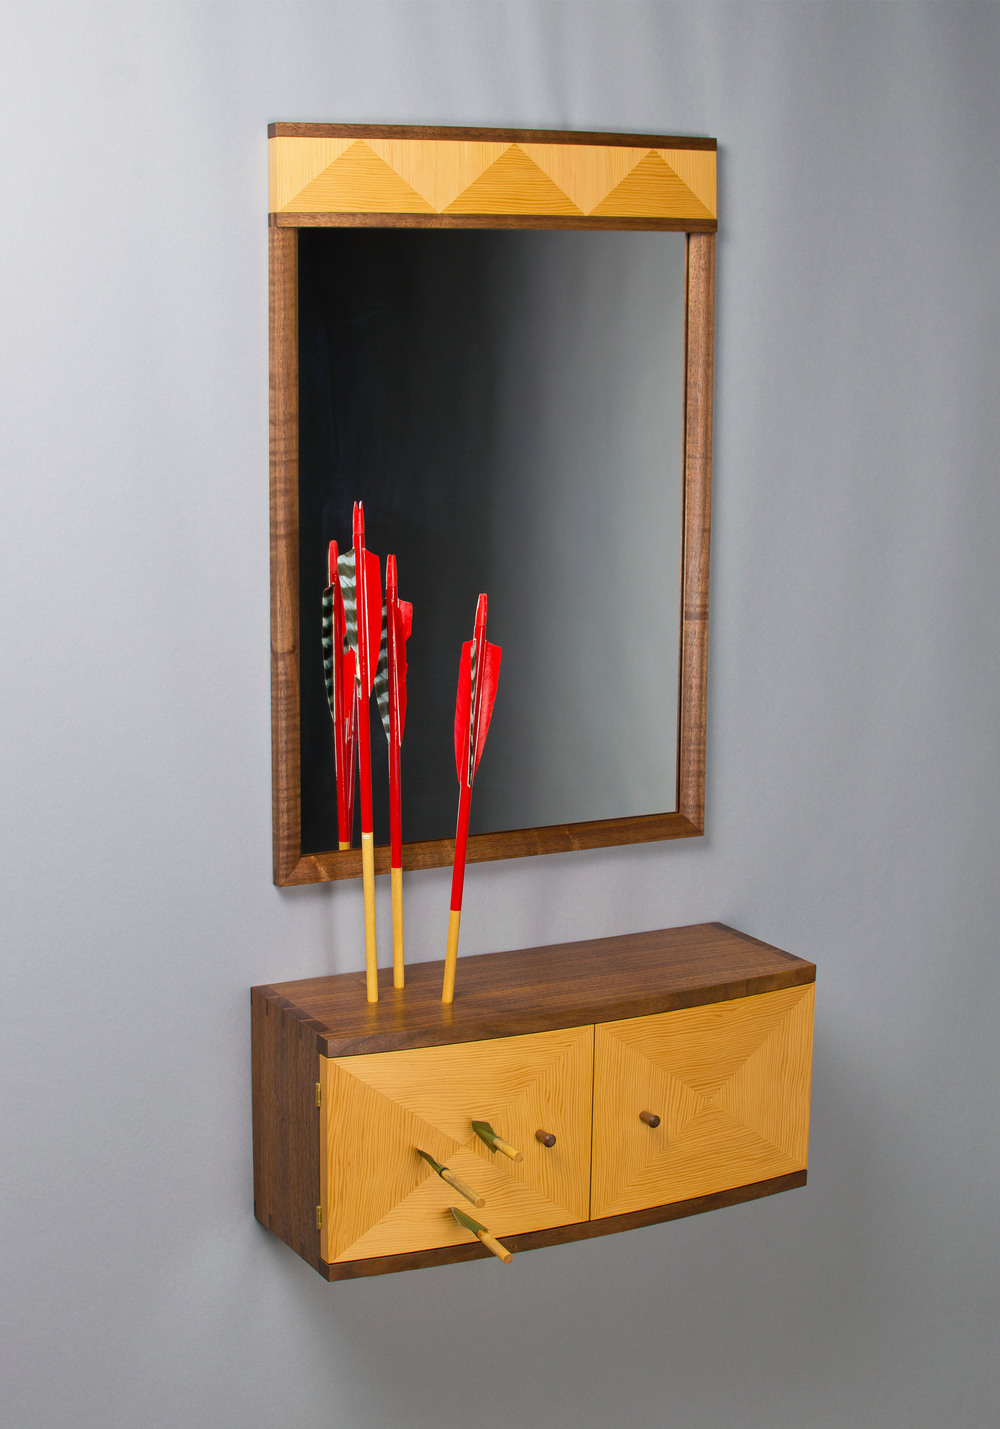 this cabinet and mirror are examples of the creative design aesthetic of mike korsak